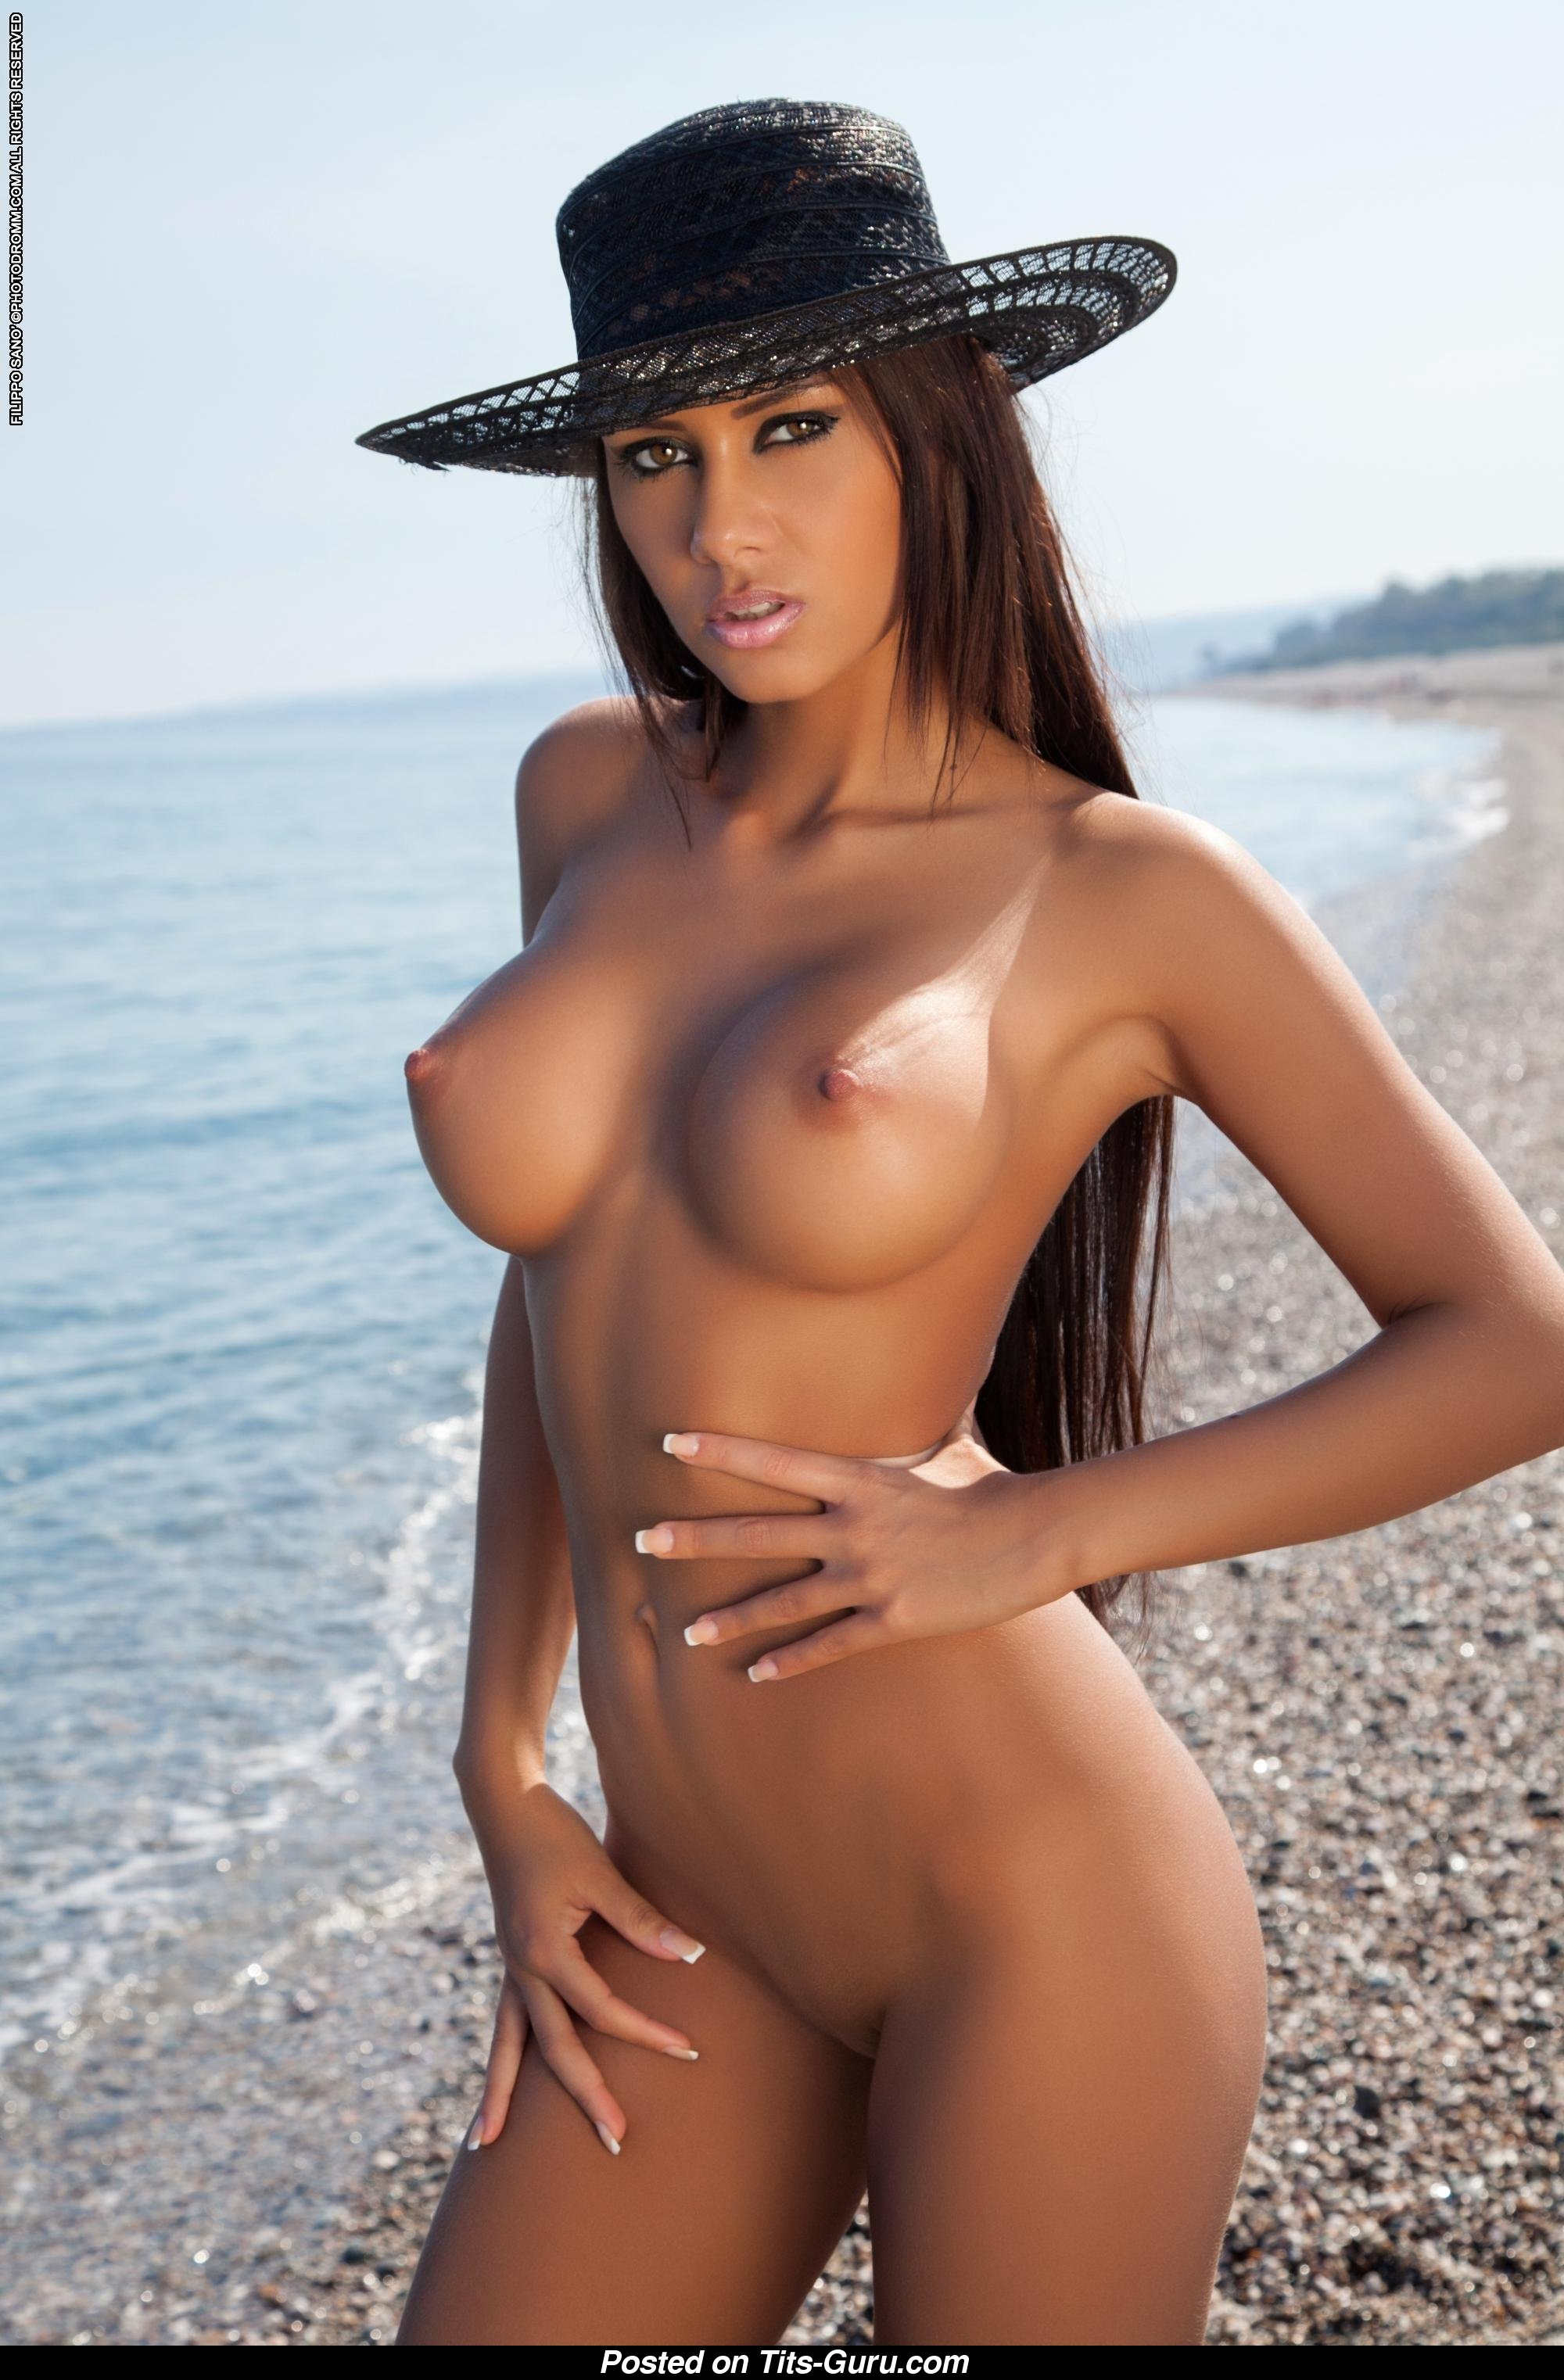 ebony-nude-picture-boy-sexy-girl